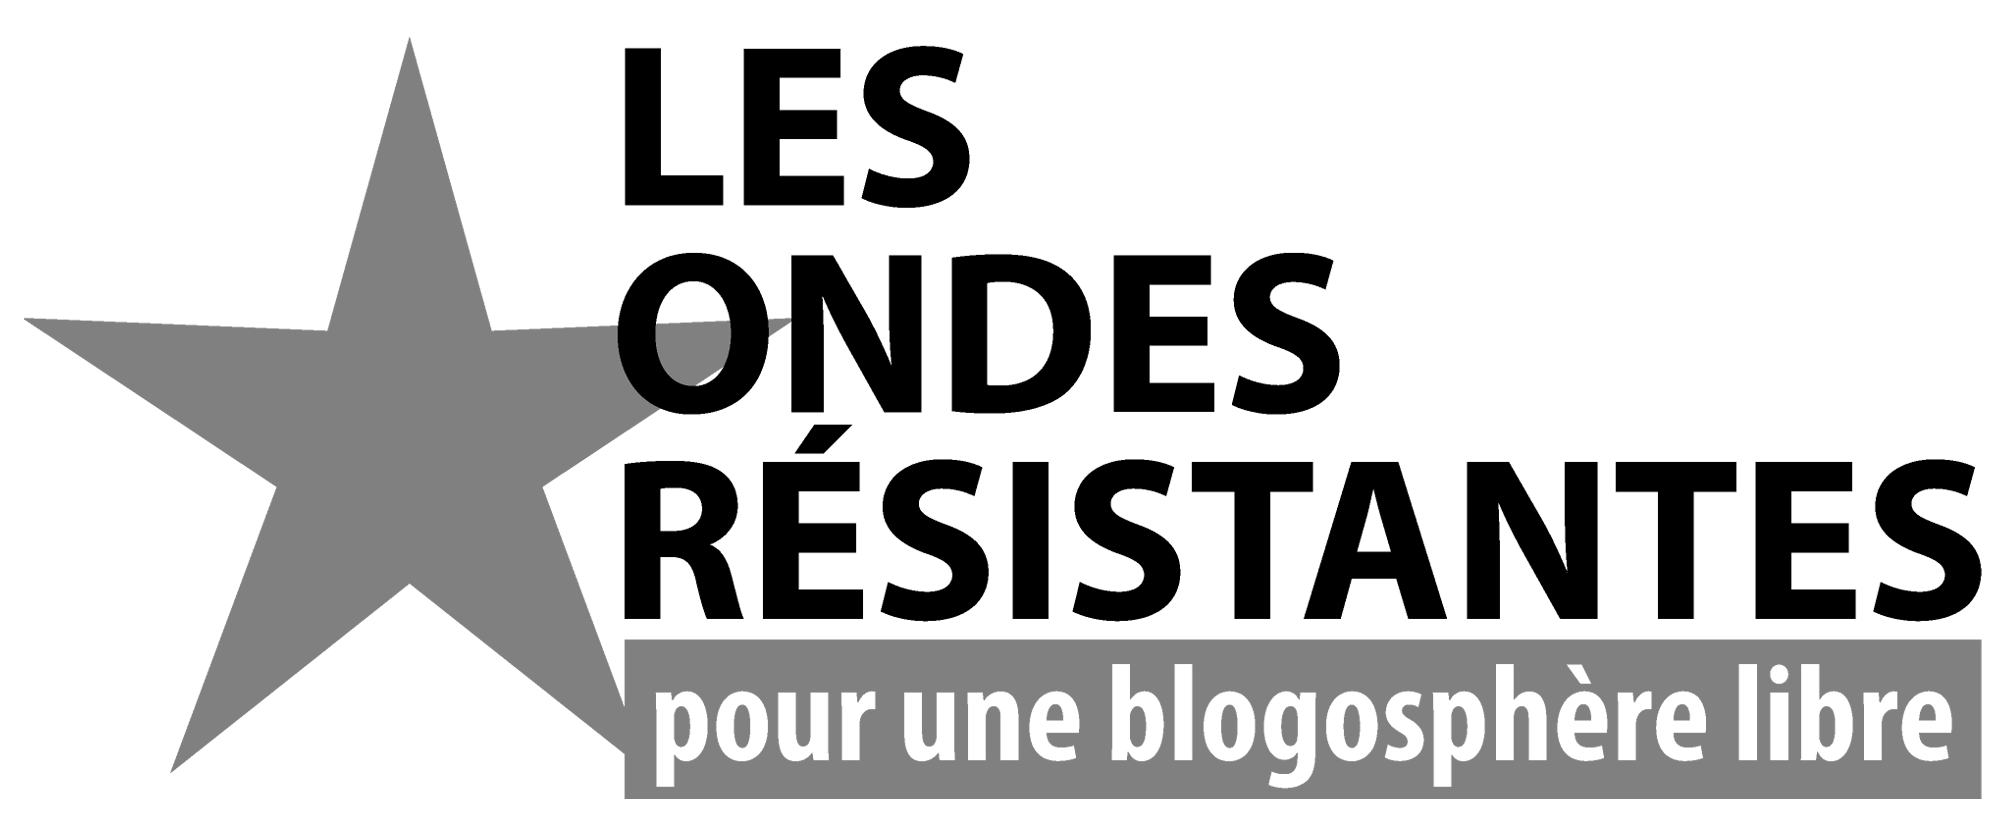 Les Ondes Résistantes pour une blogosphère libre